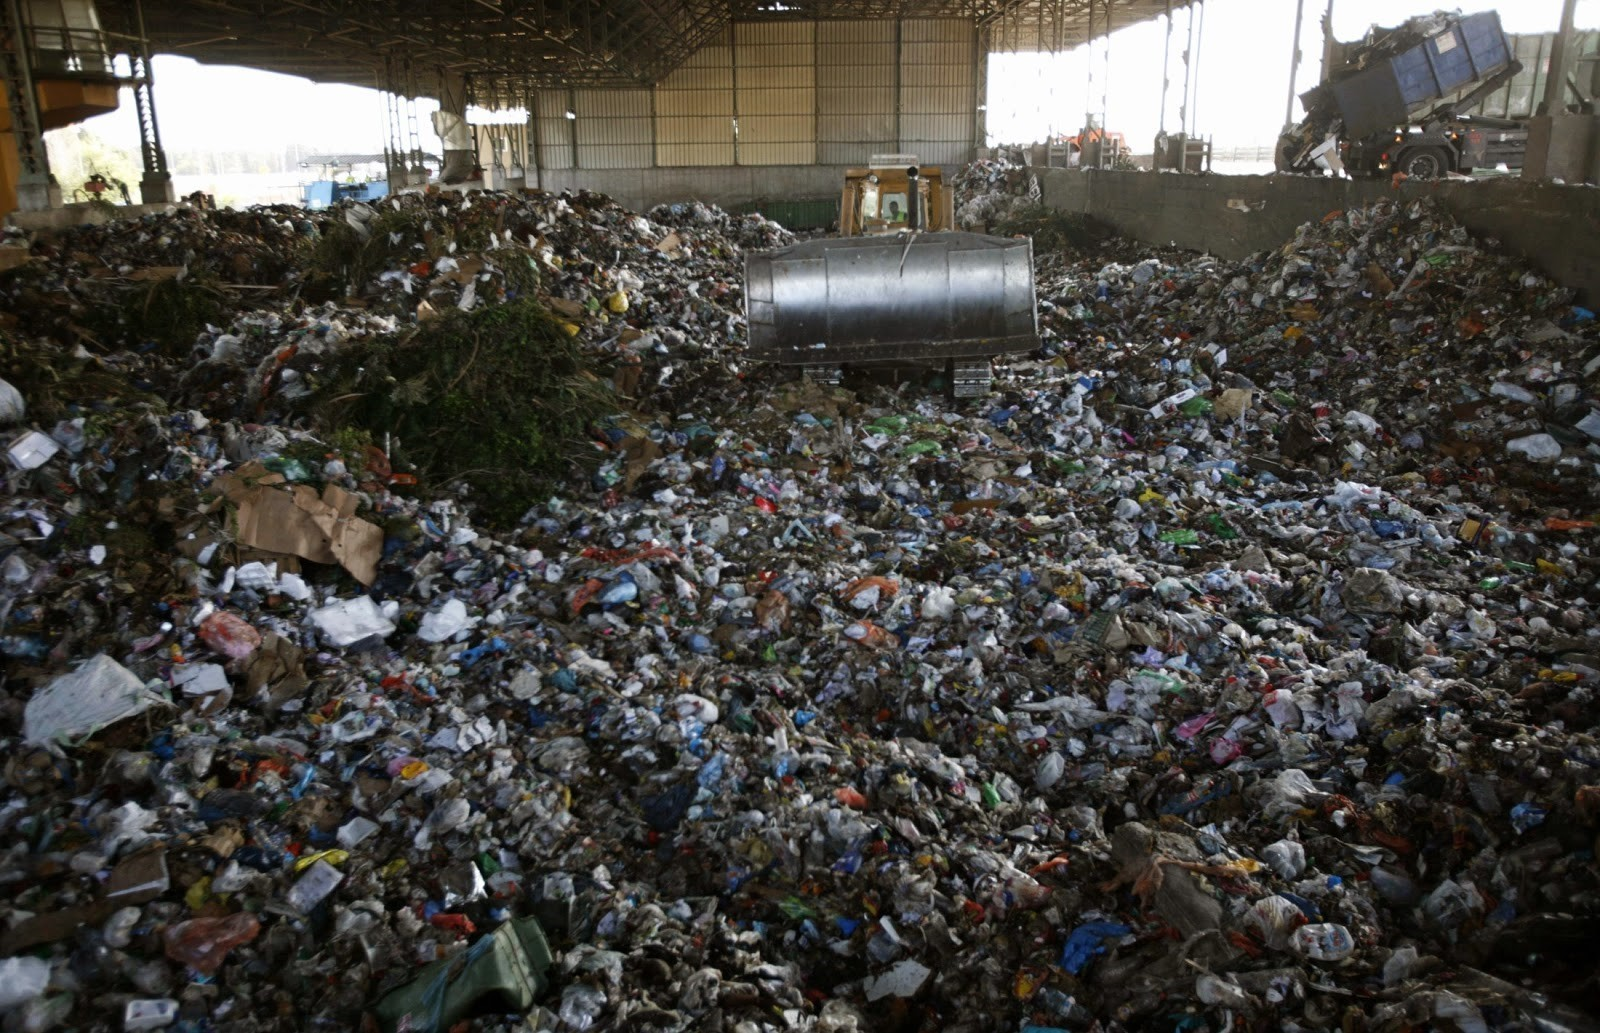 For 50 years, Hiriya landfill, outside Tel Aviv was the dumping ground for much of the country's waste.